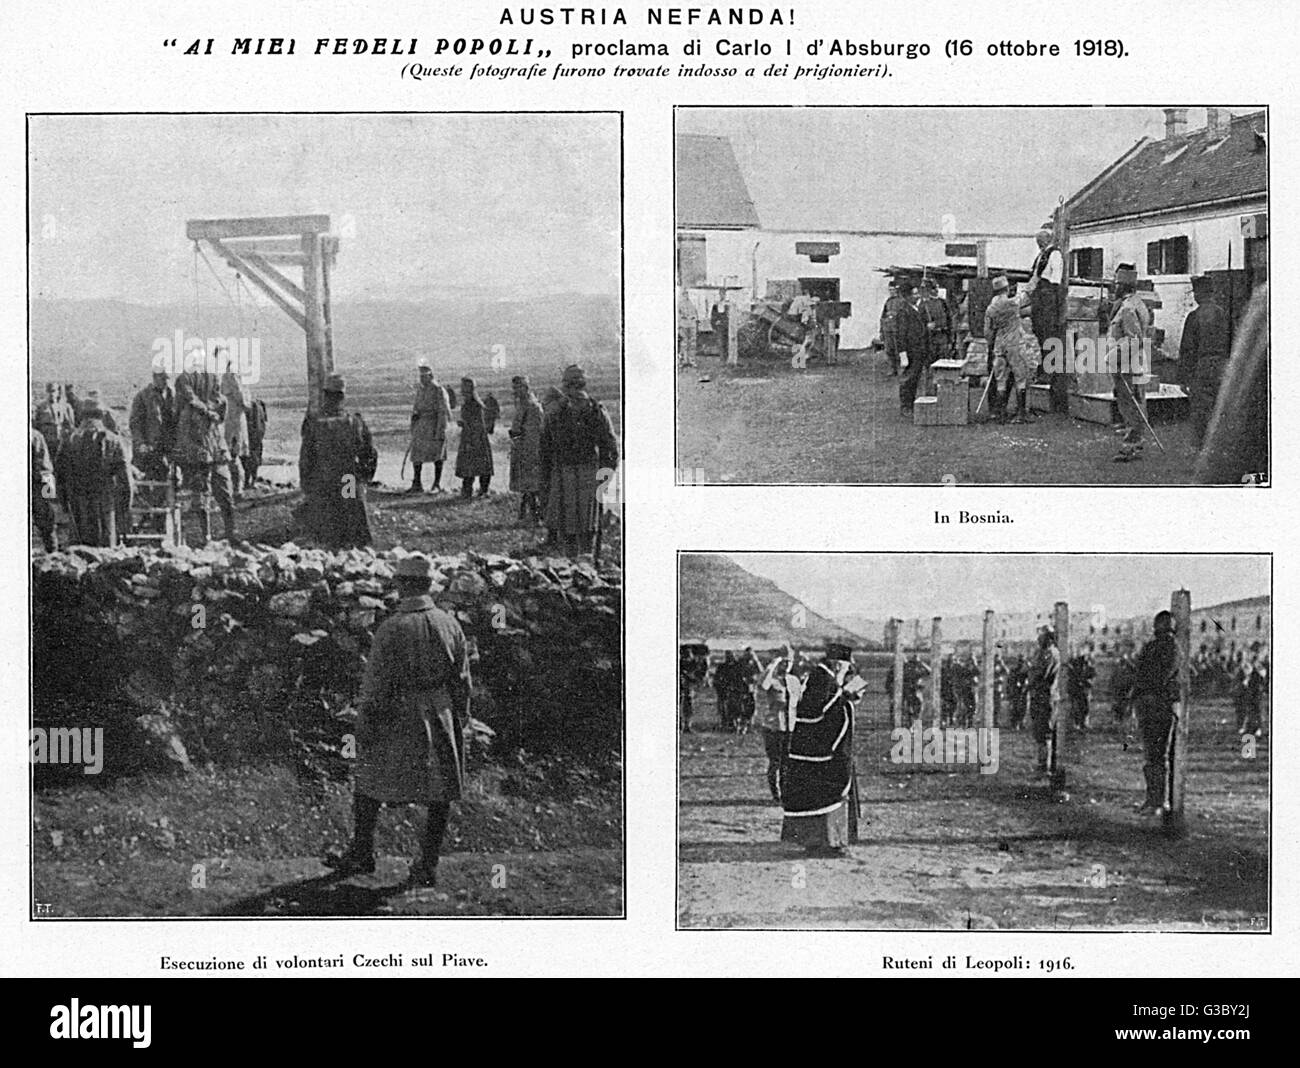 WW1 - Alleged Austrian Atrocities, including the execution of Czech volunteers, further hangings in Bosnia and  - Stock Image